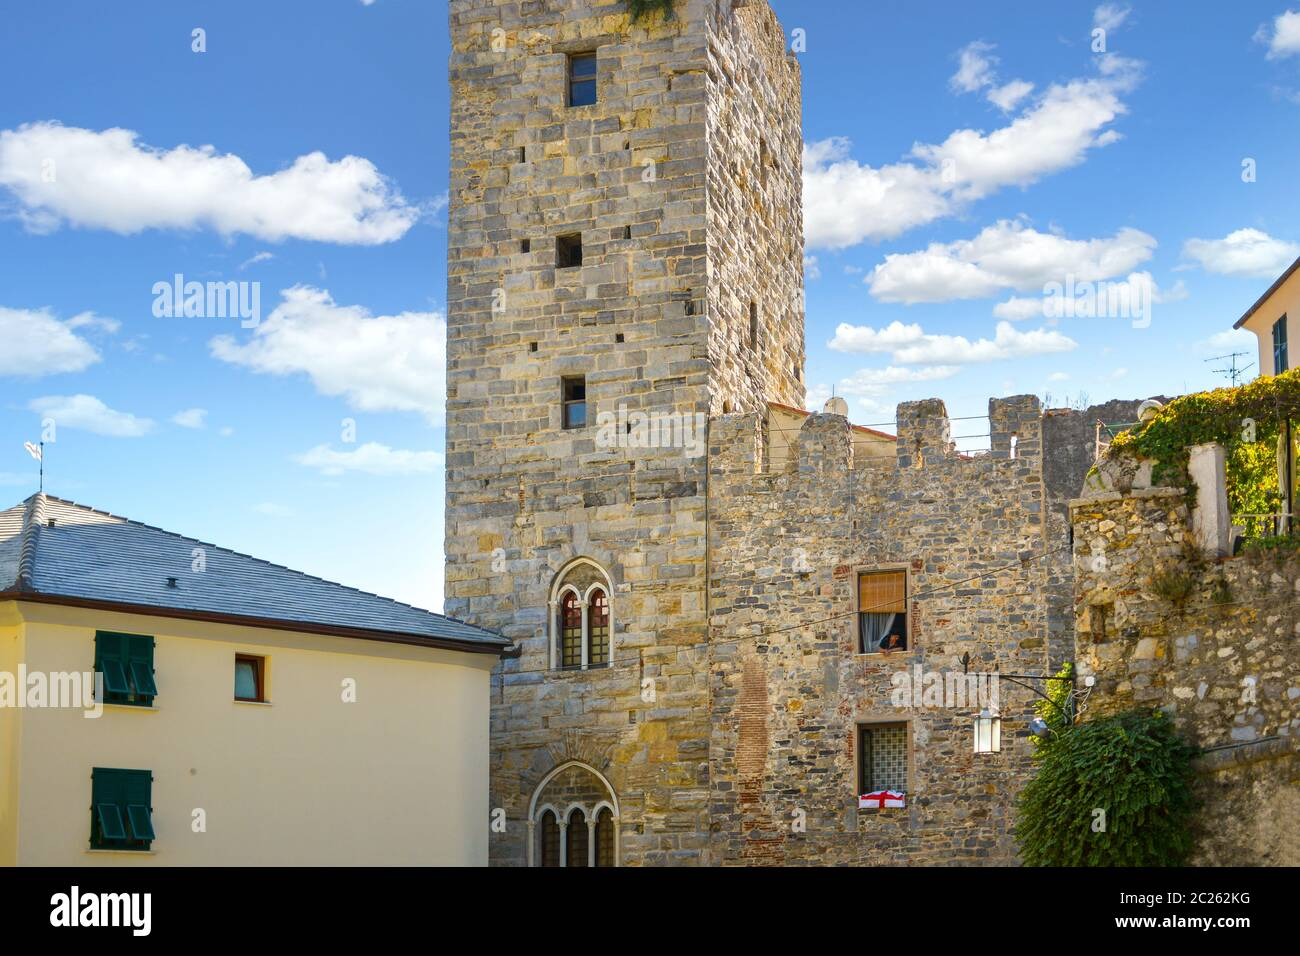 An Italian woman leans out from her apartment window in a medieval tower along the ancient walls of the city of Portovenere, Italy Stock Photo